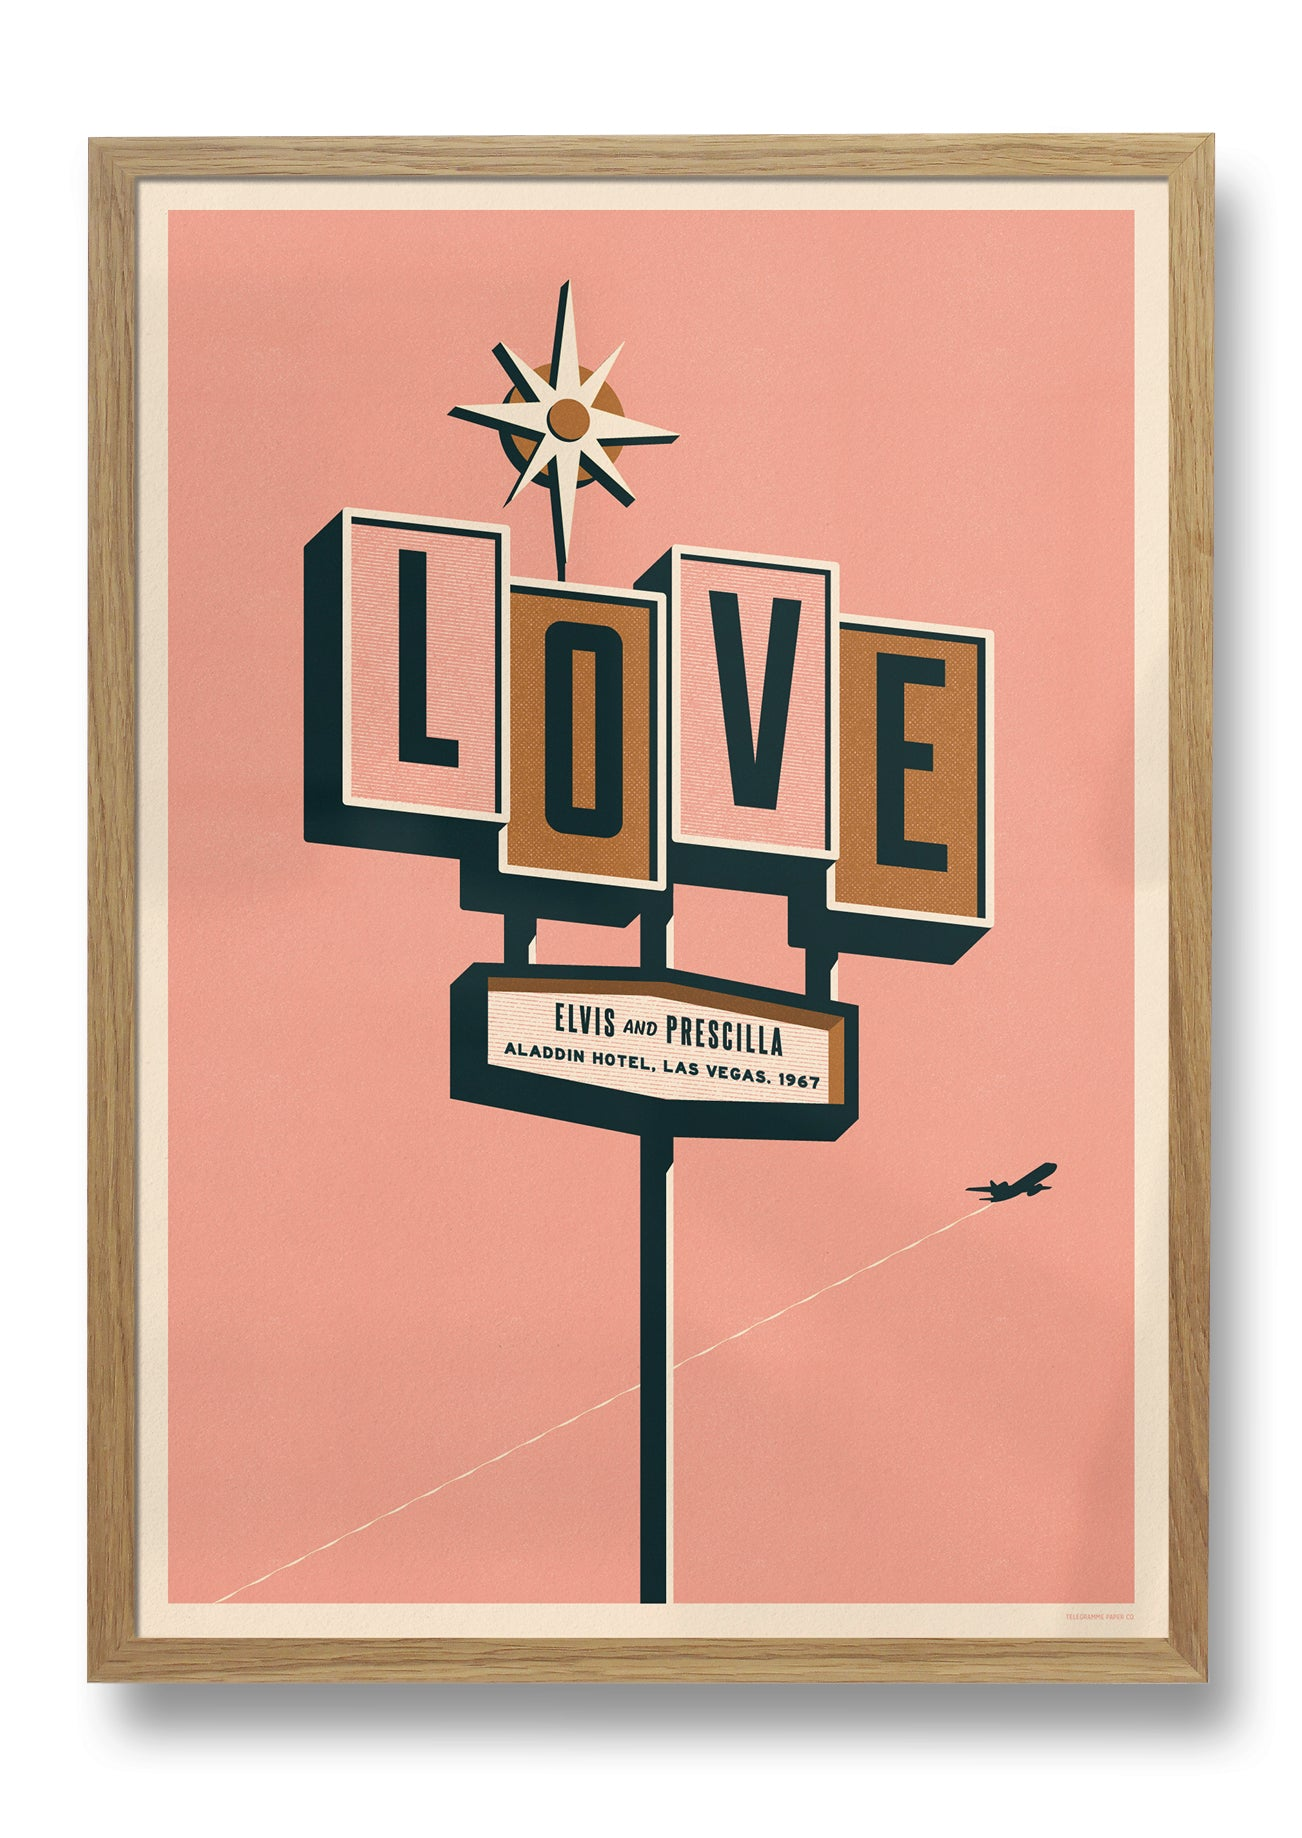 LOVE PRINT - PINK WITH OAK FRAME